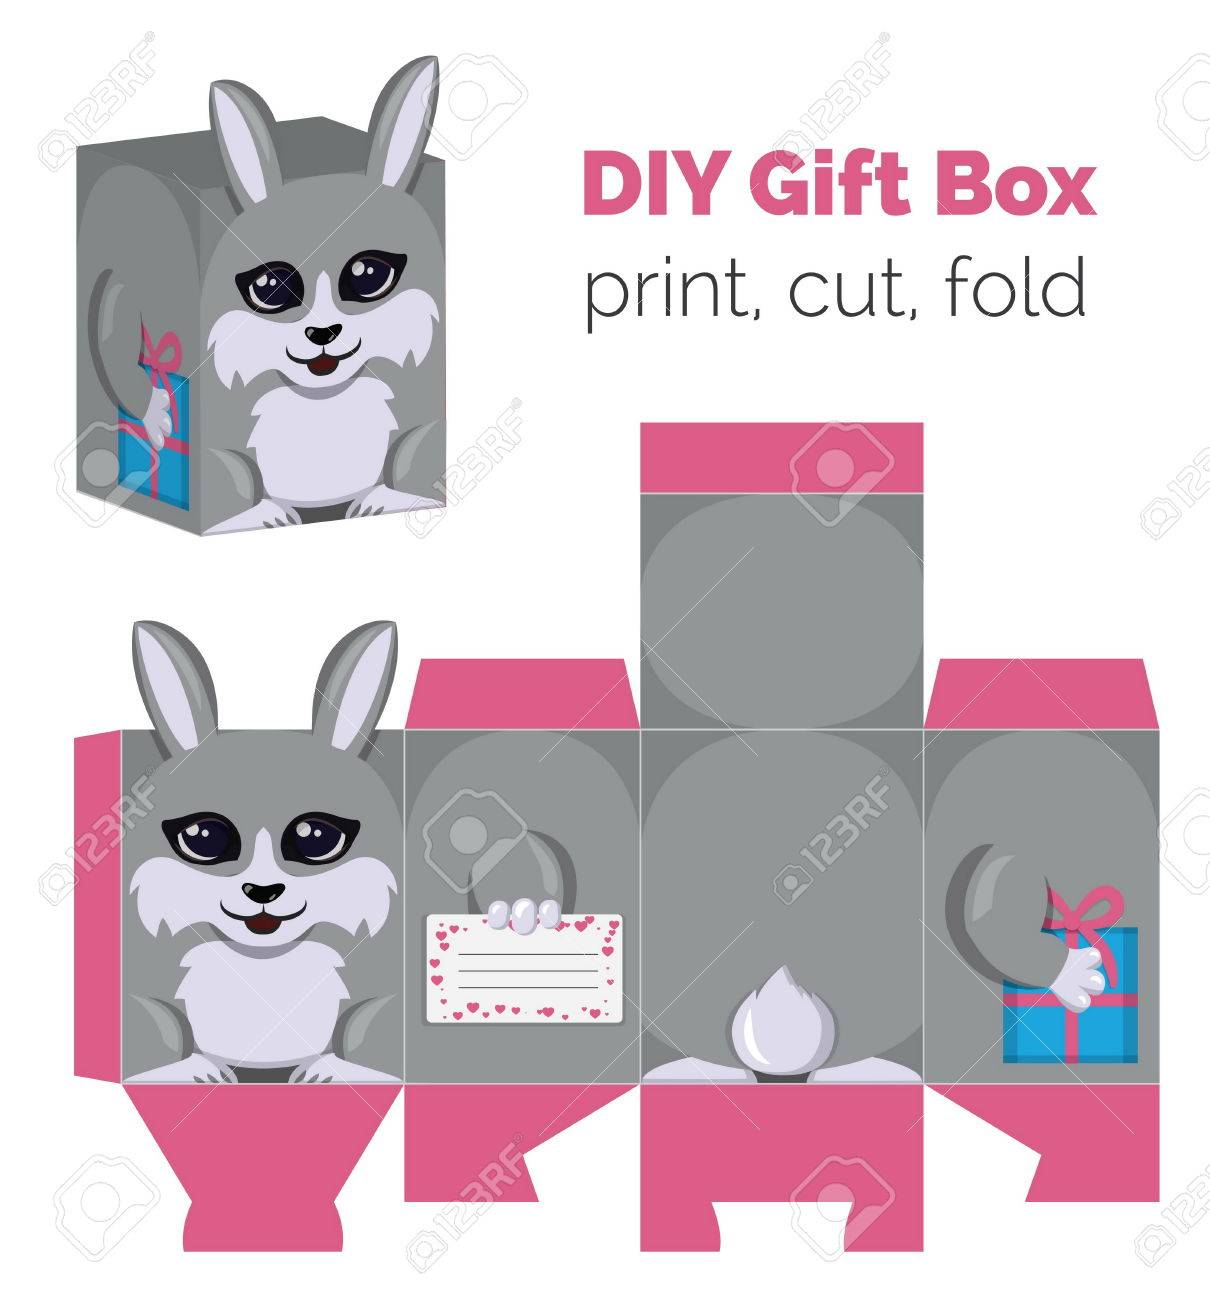 Adorable Do It Yourself Diy Rabbit Gift Box With Ears For Sweets